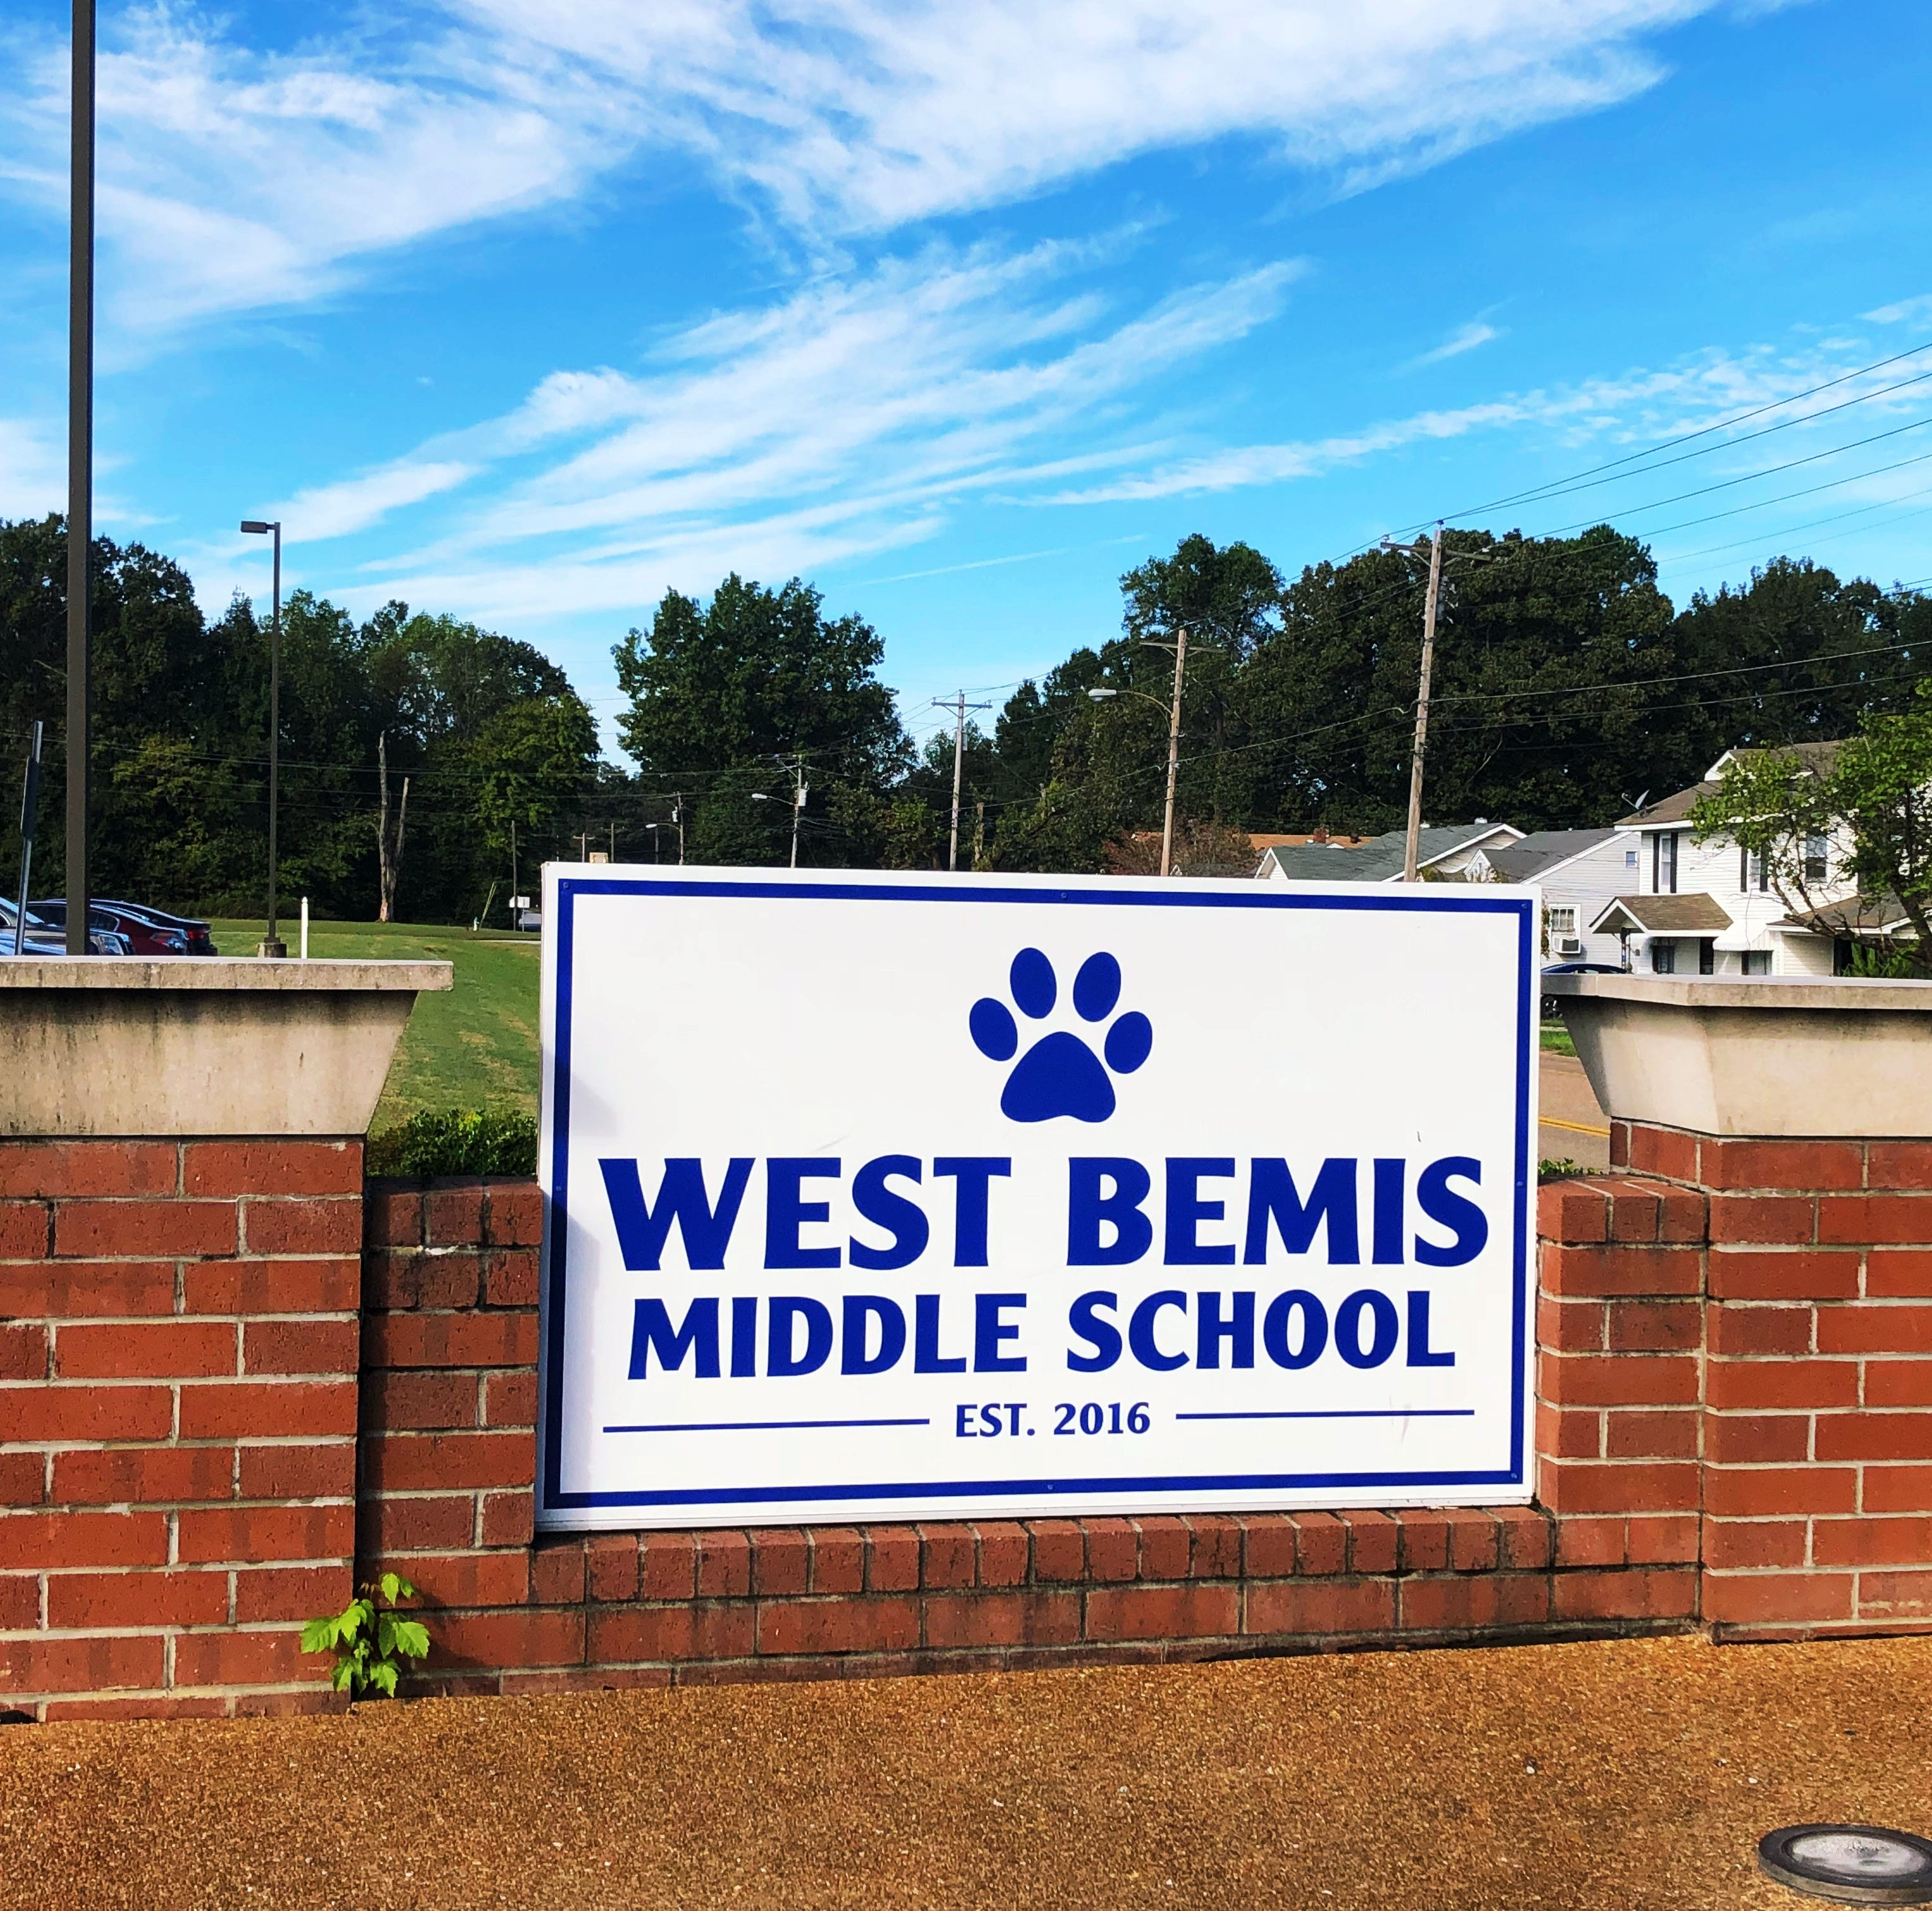 Former West Bemis Middle School bookkeeper indicted on theft over $10,000